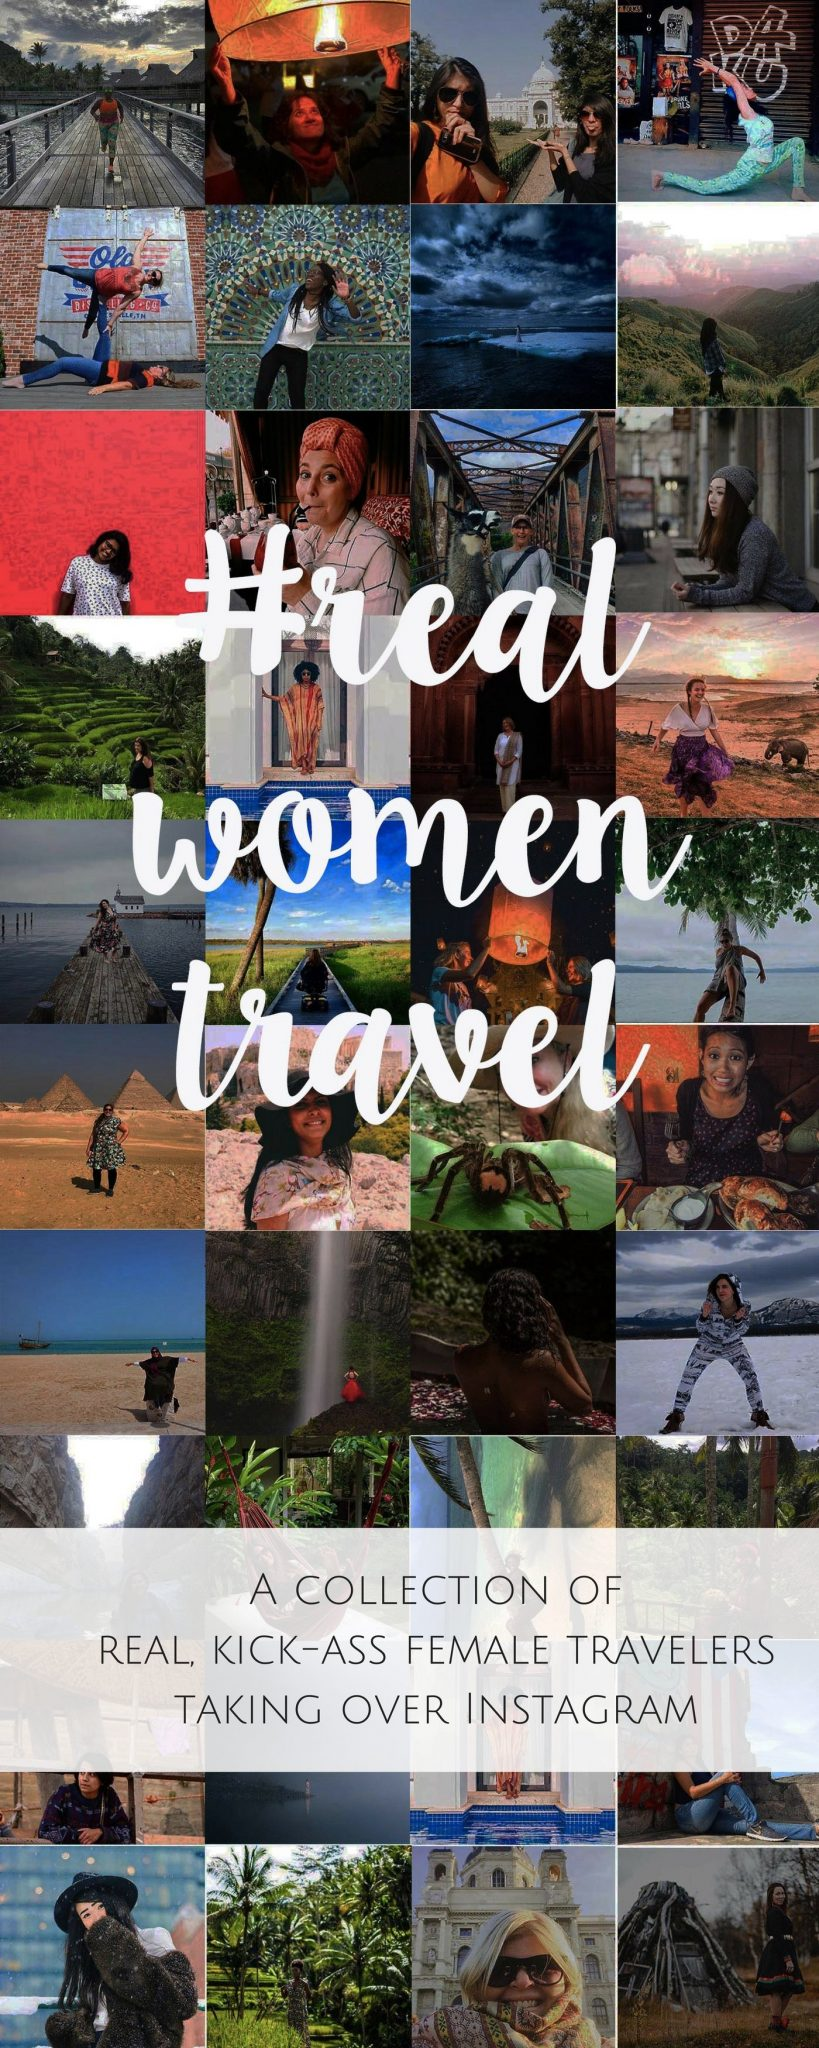 Looking for some different travel inspiration on Instagram? I give you #realwomentravel - a round-up of some kick-ass female travelers to follow and get inspired by.